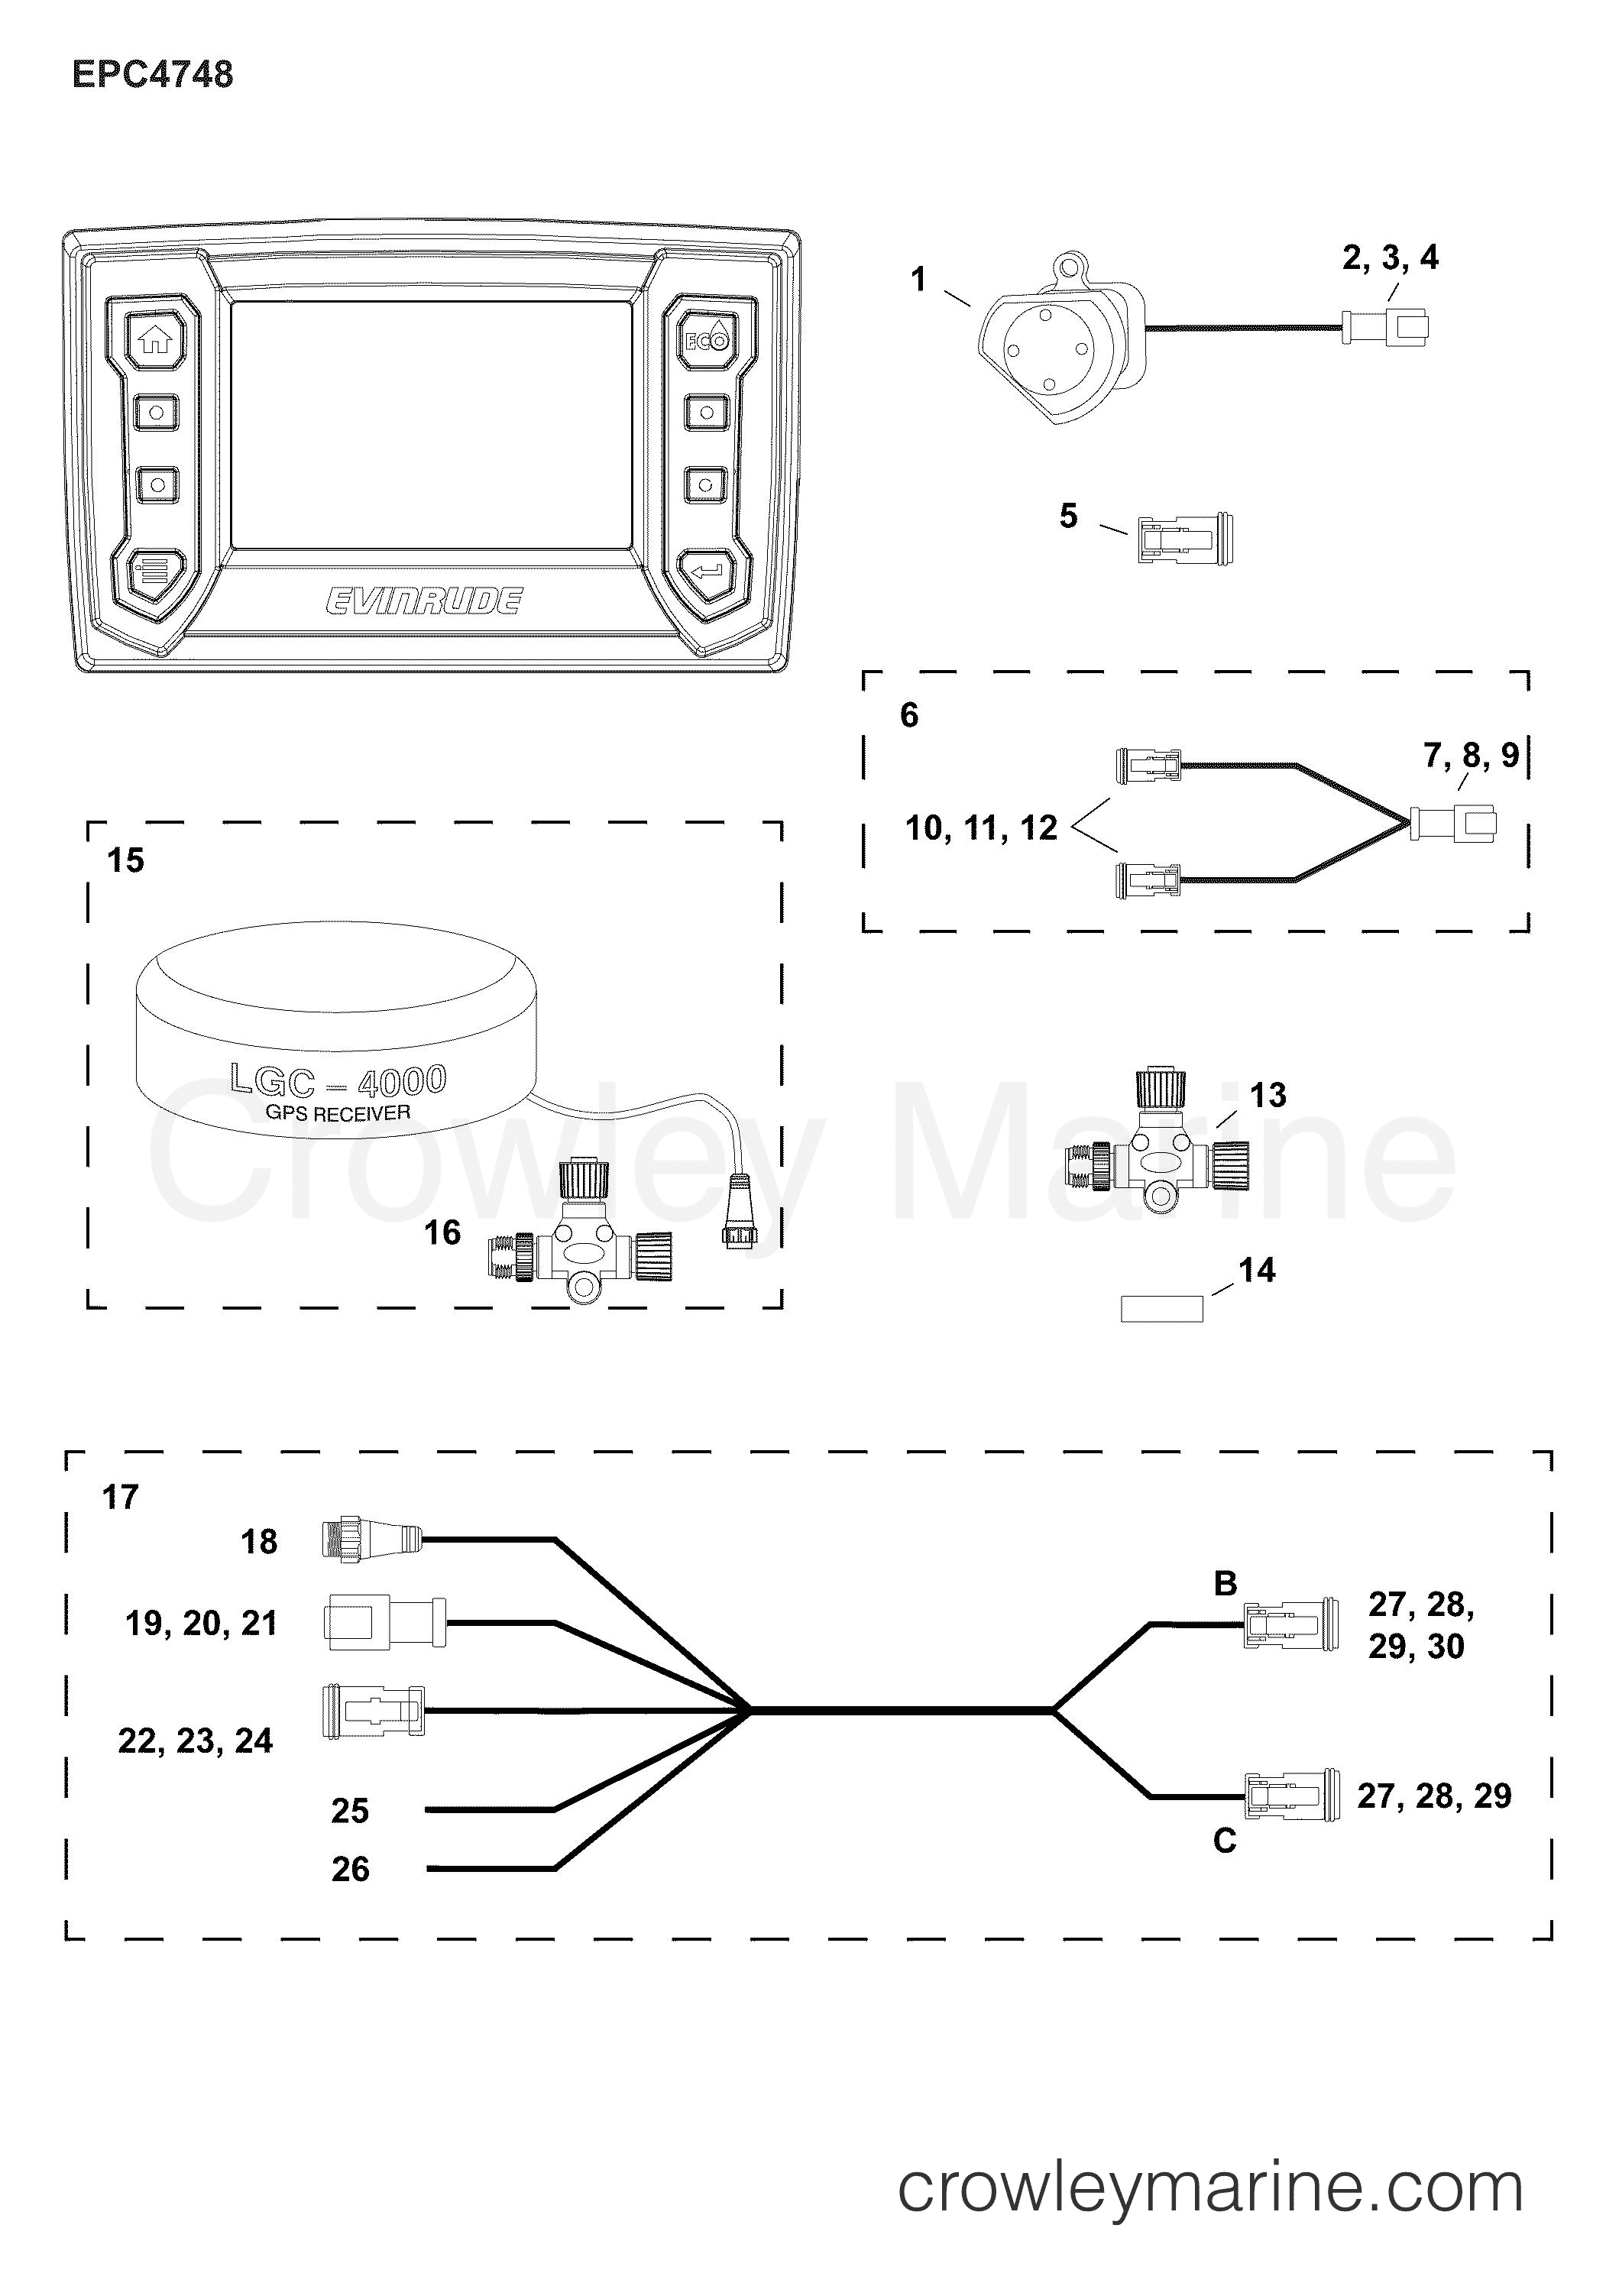 Wiring Diagram Evinrude 2015 E Tec 40 - Wiring Diagrams Place